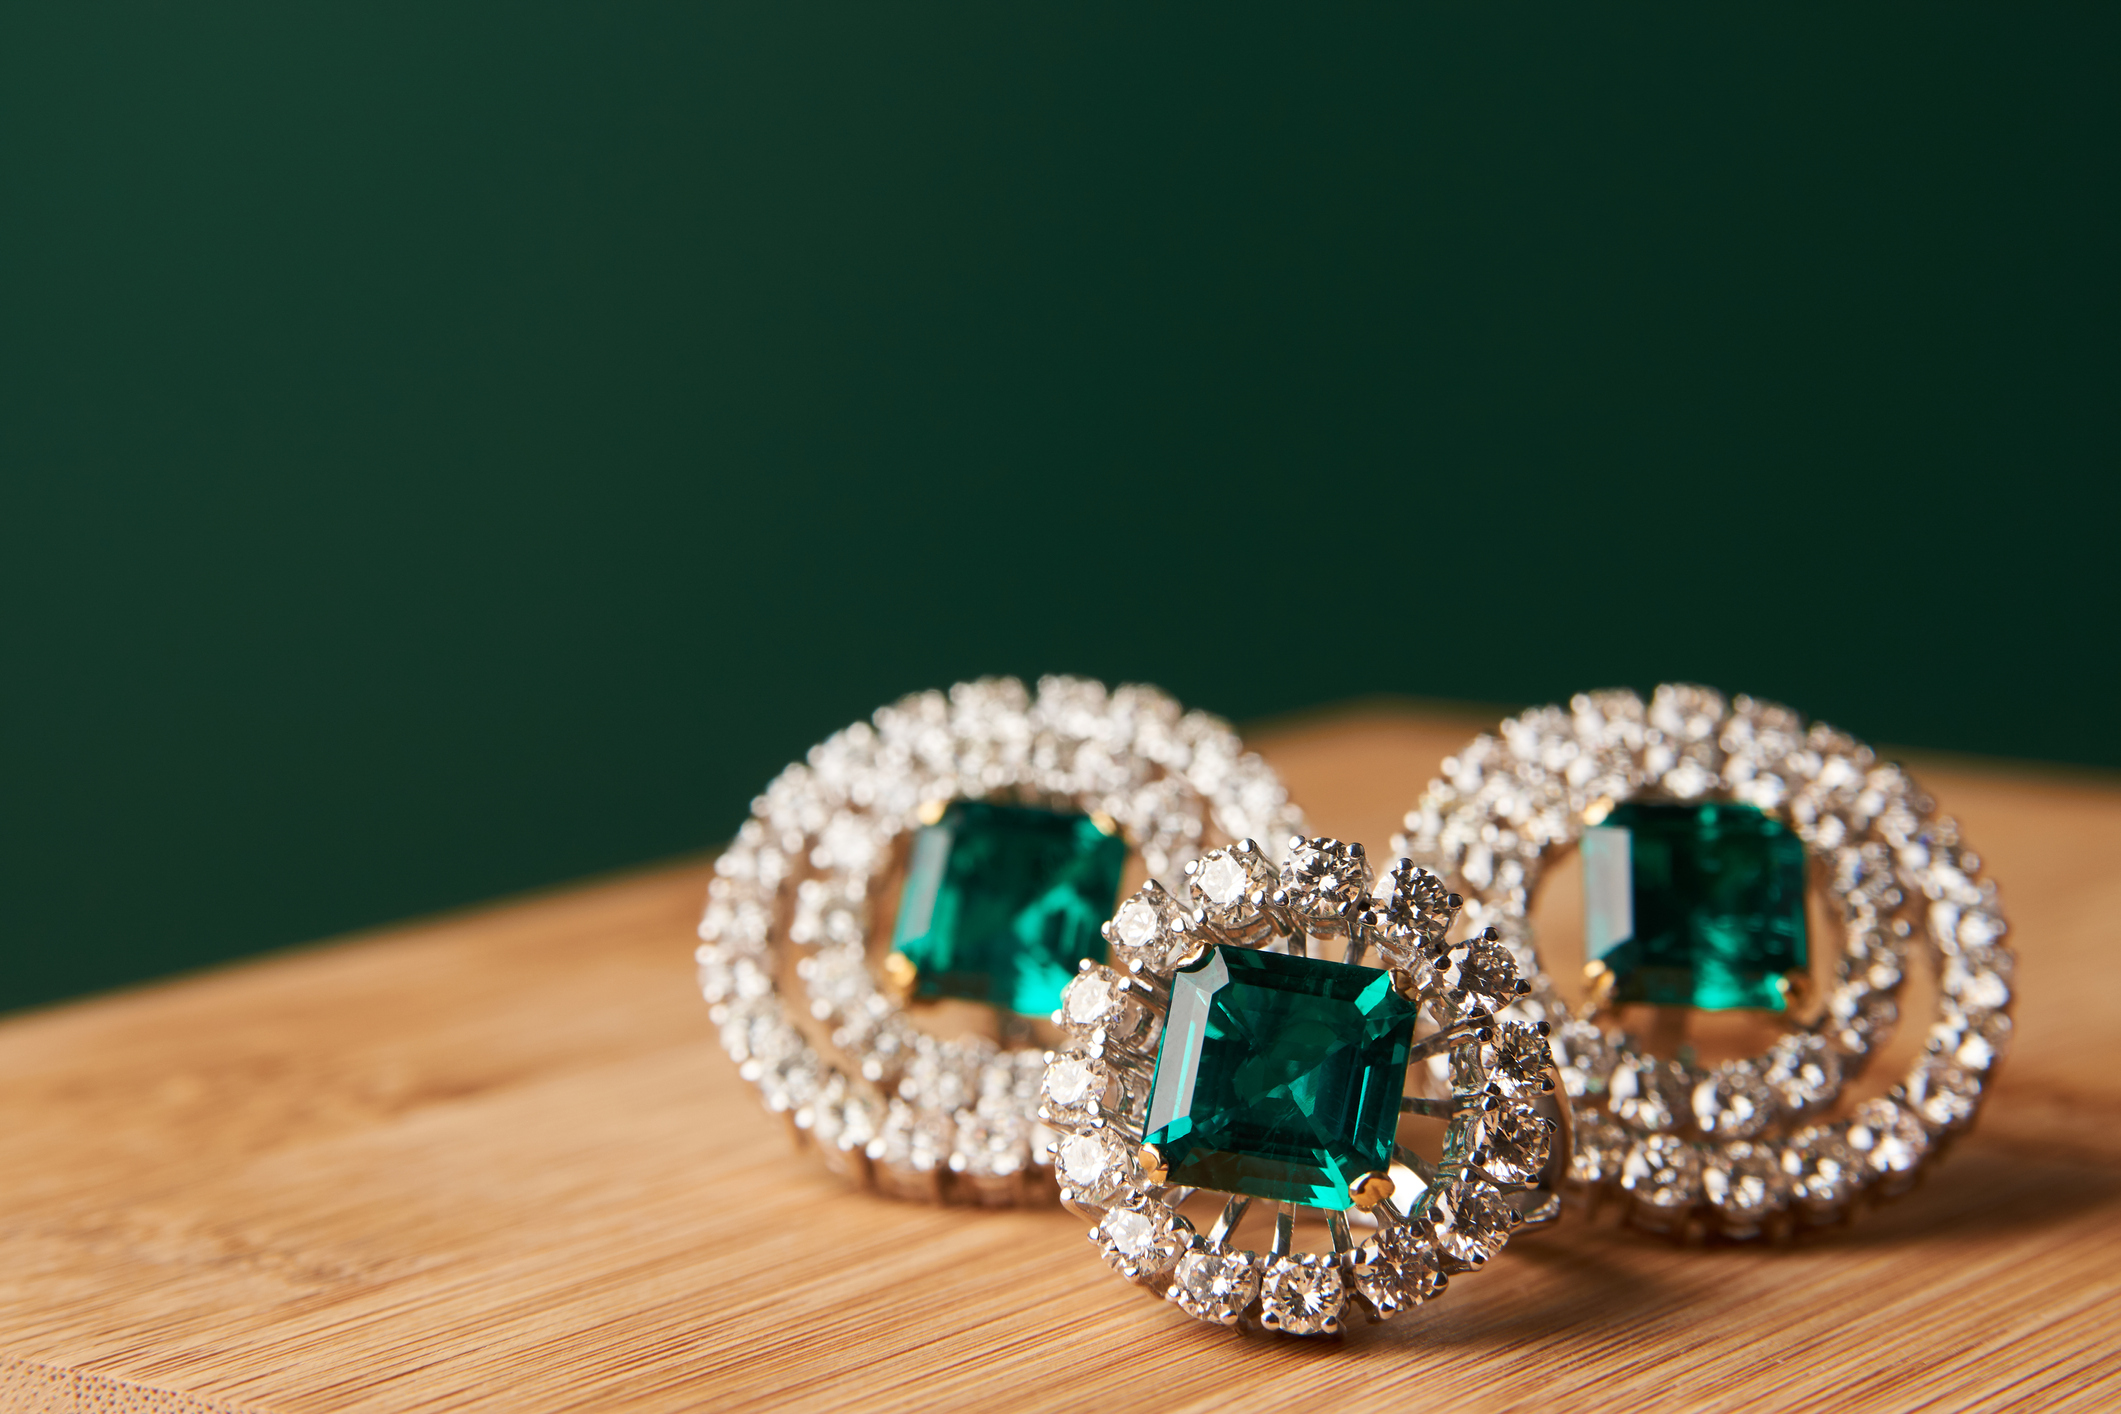 Emerald ring and pair of diamond earrings in gold, wedding jewelry with luxury gift box , close-up. Selective focus